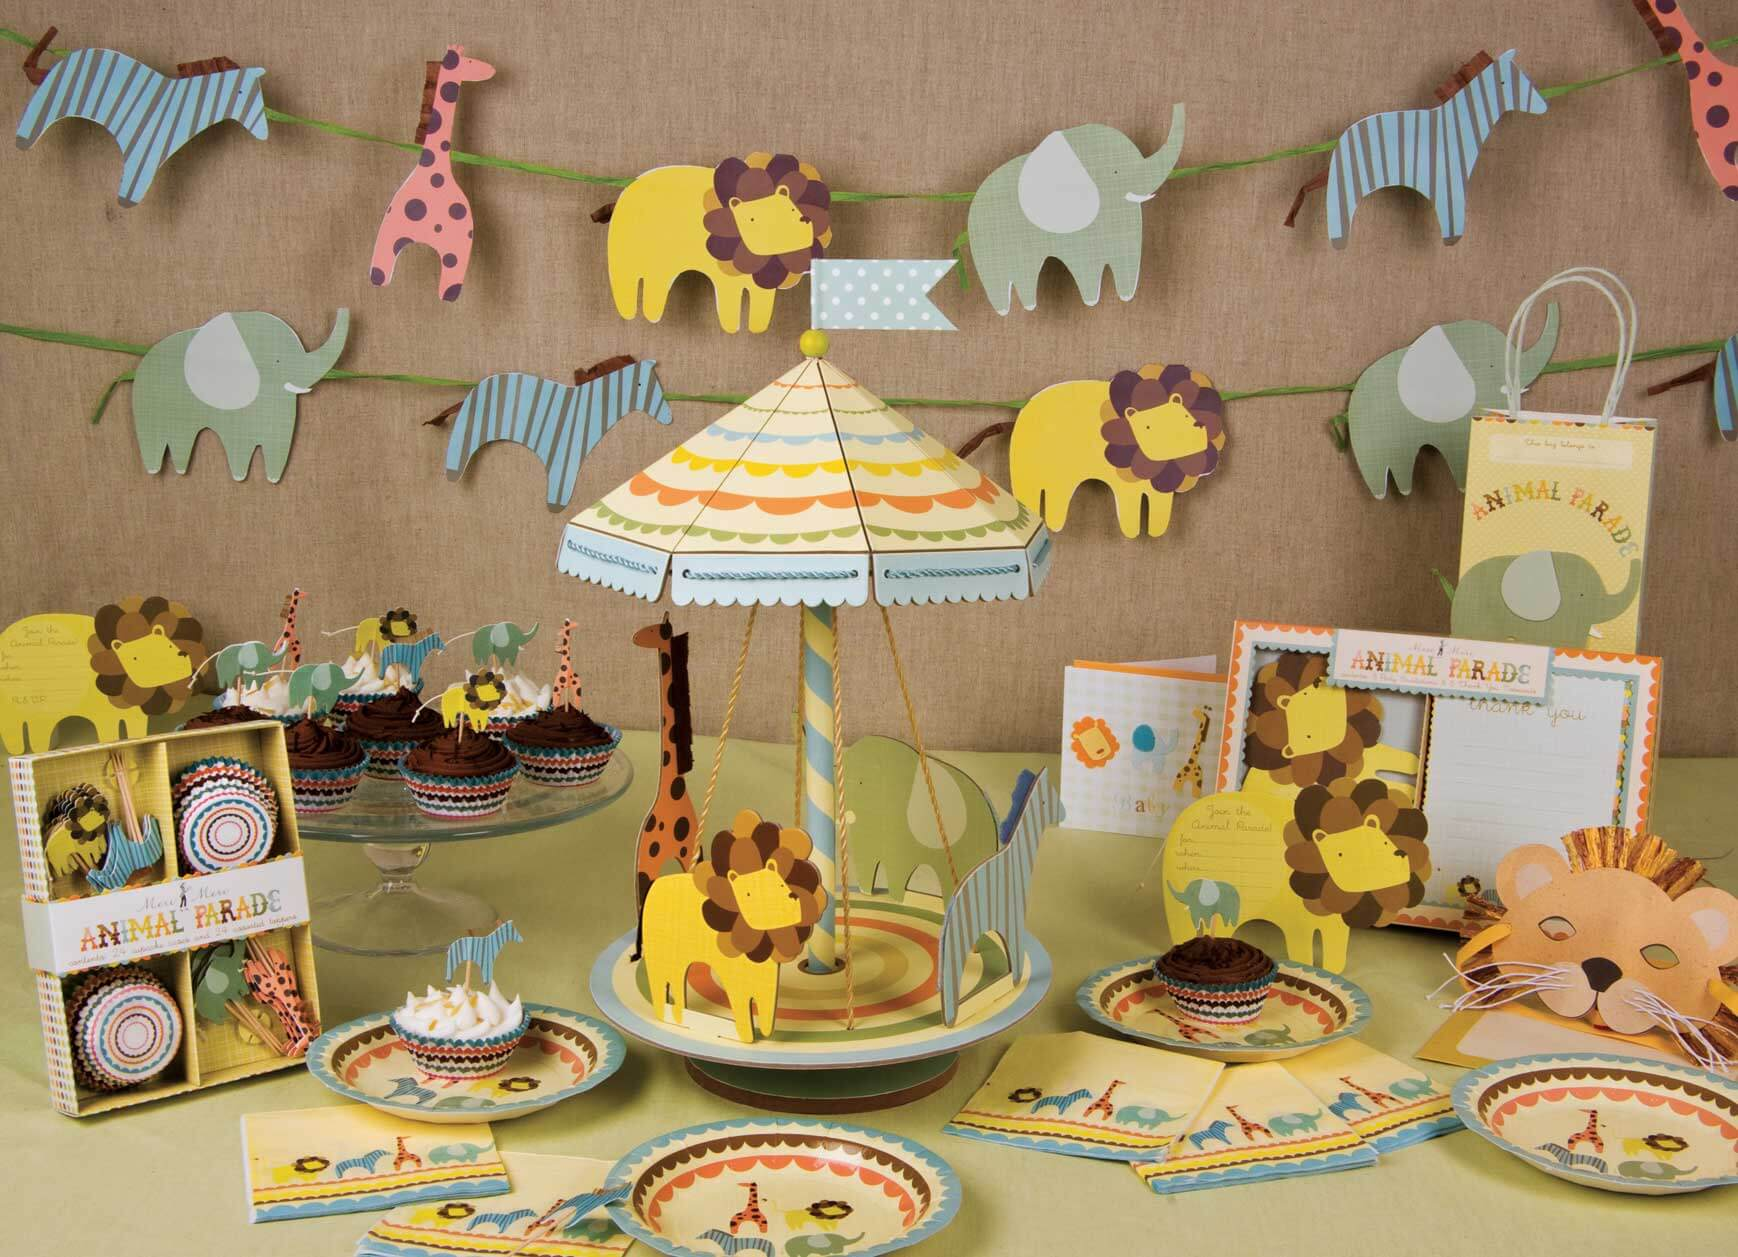 Jungle Baby Shower Decorations 1738 x 1257